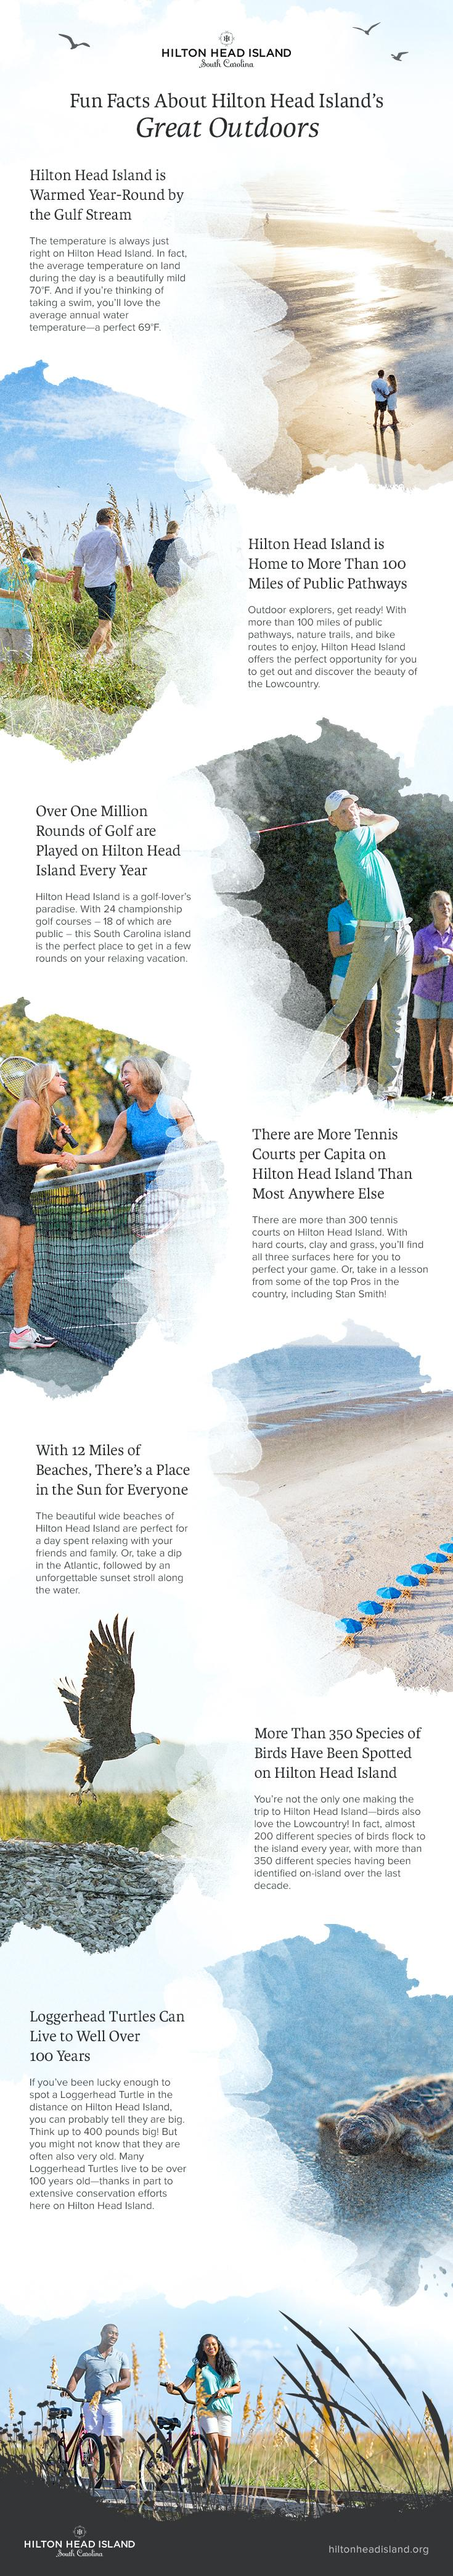 Fun Facts About Hilton Head Island's Outdoor Activities Infographic